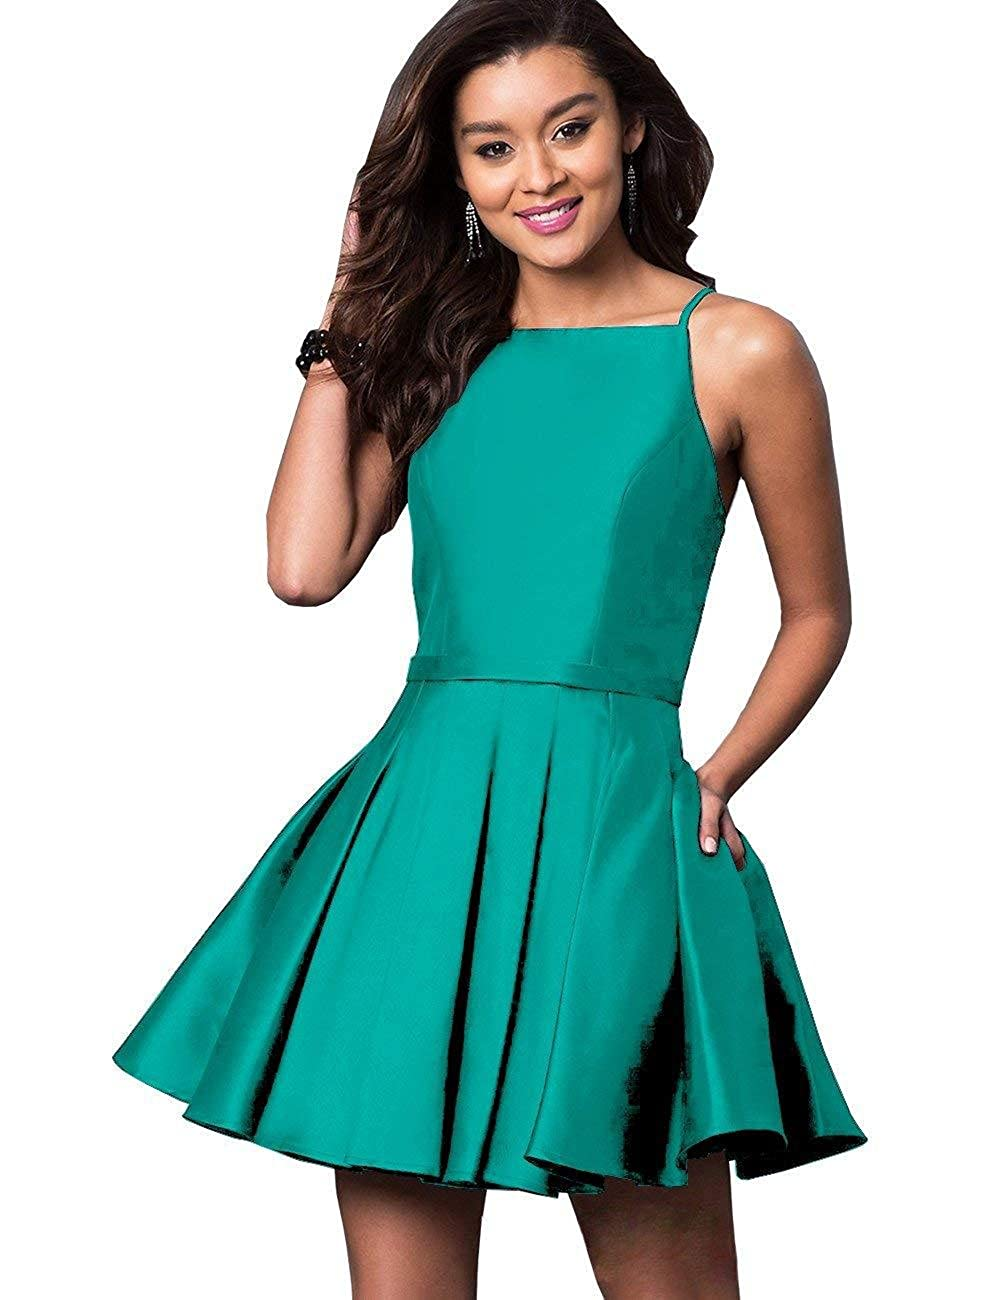 Turquoise NewFex Homecoming Dresses Satin Spaghetti Strap 2018 Aline Short Prom Gown with Pockets